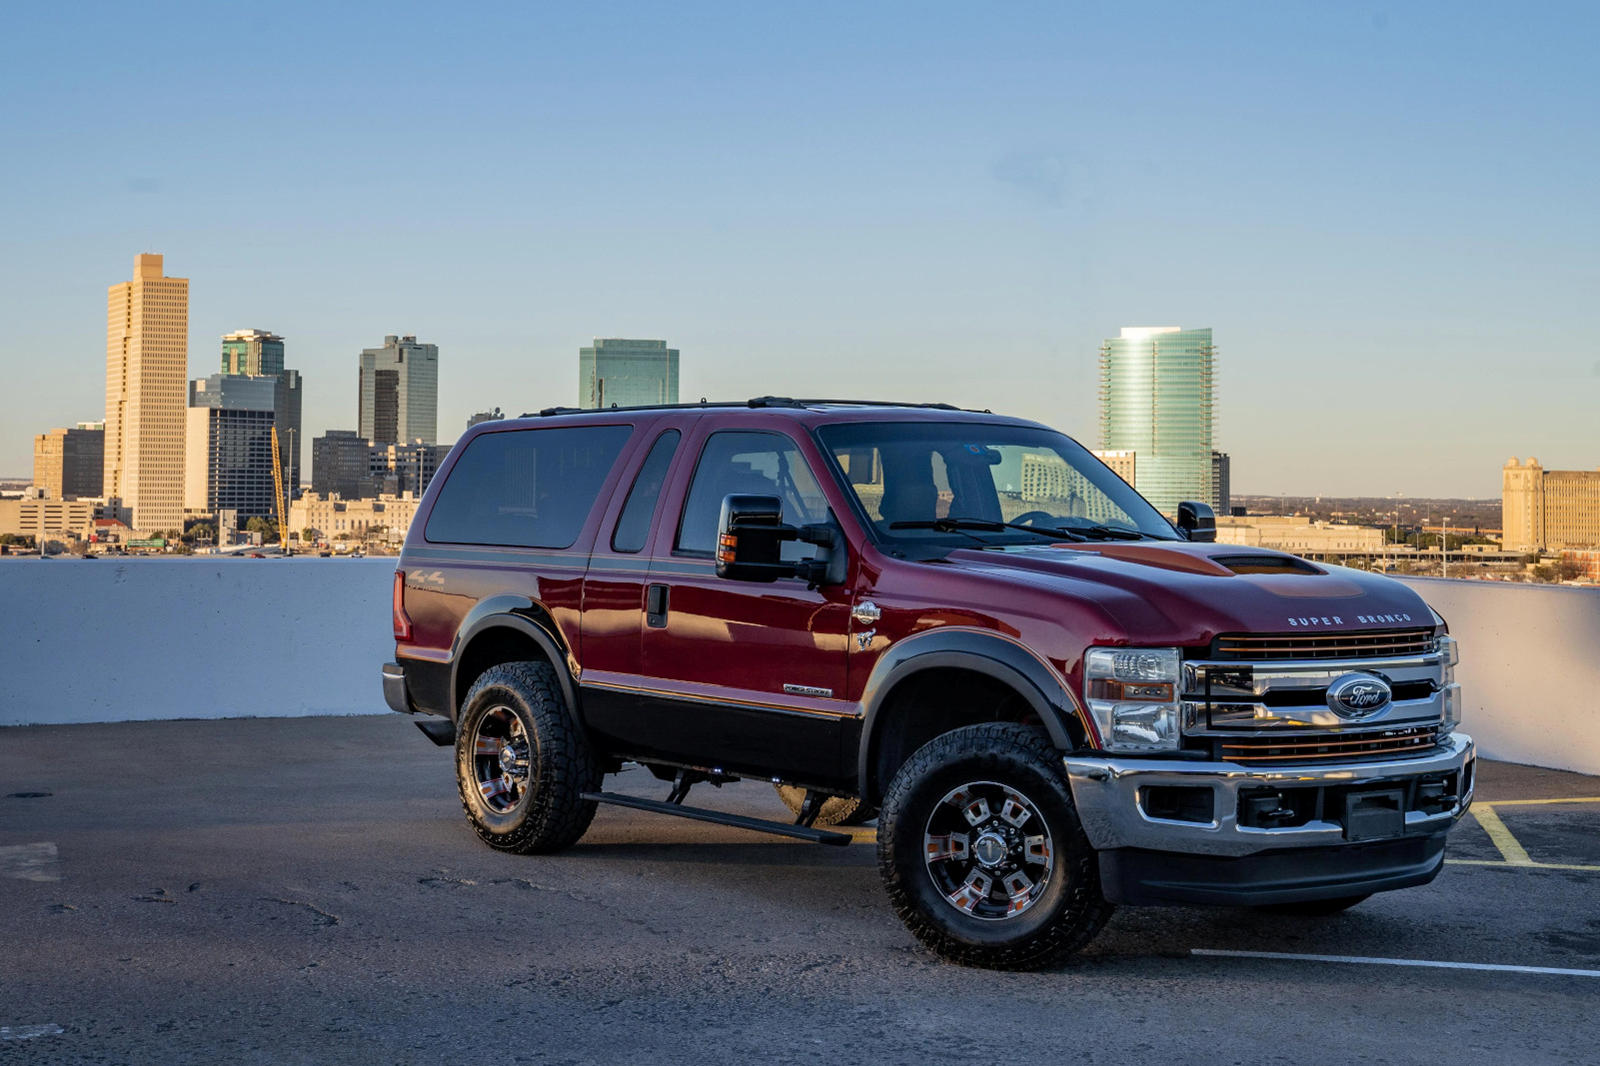 2001 Ford Bronco